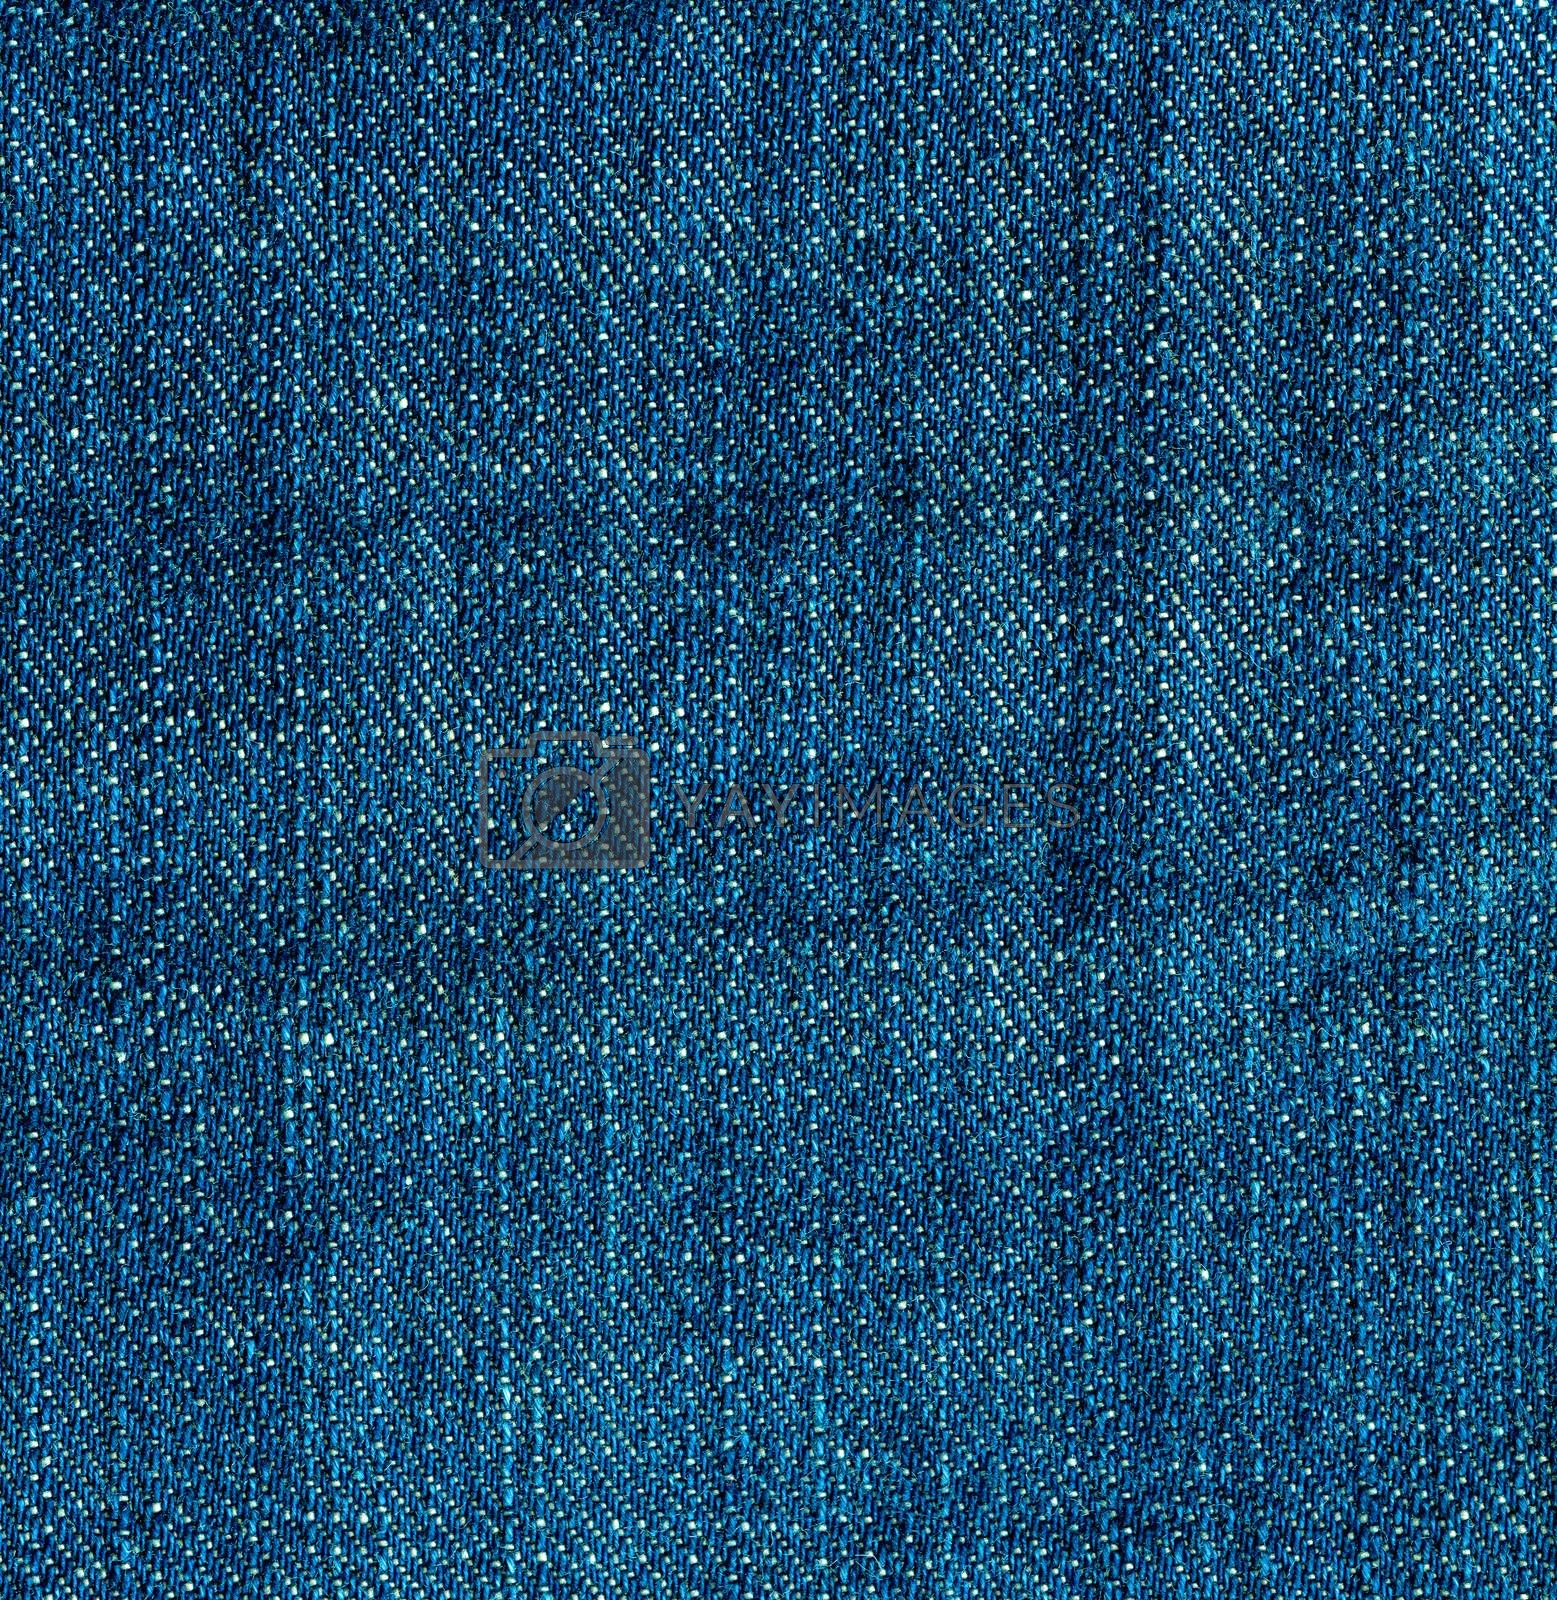 Blue jeans denim texture. Vintage background